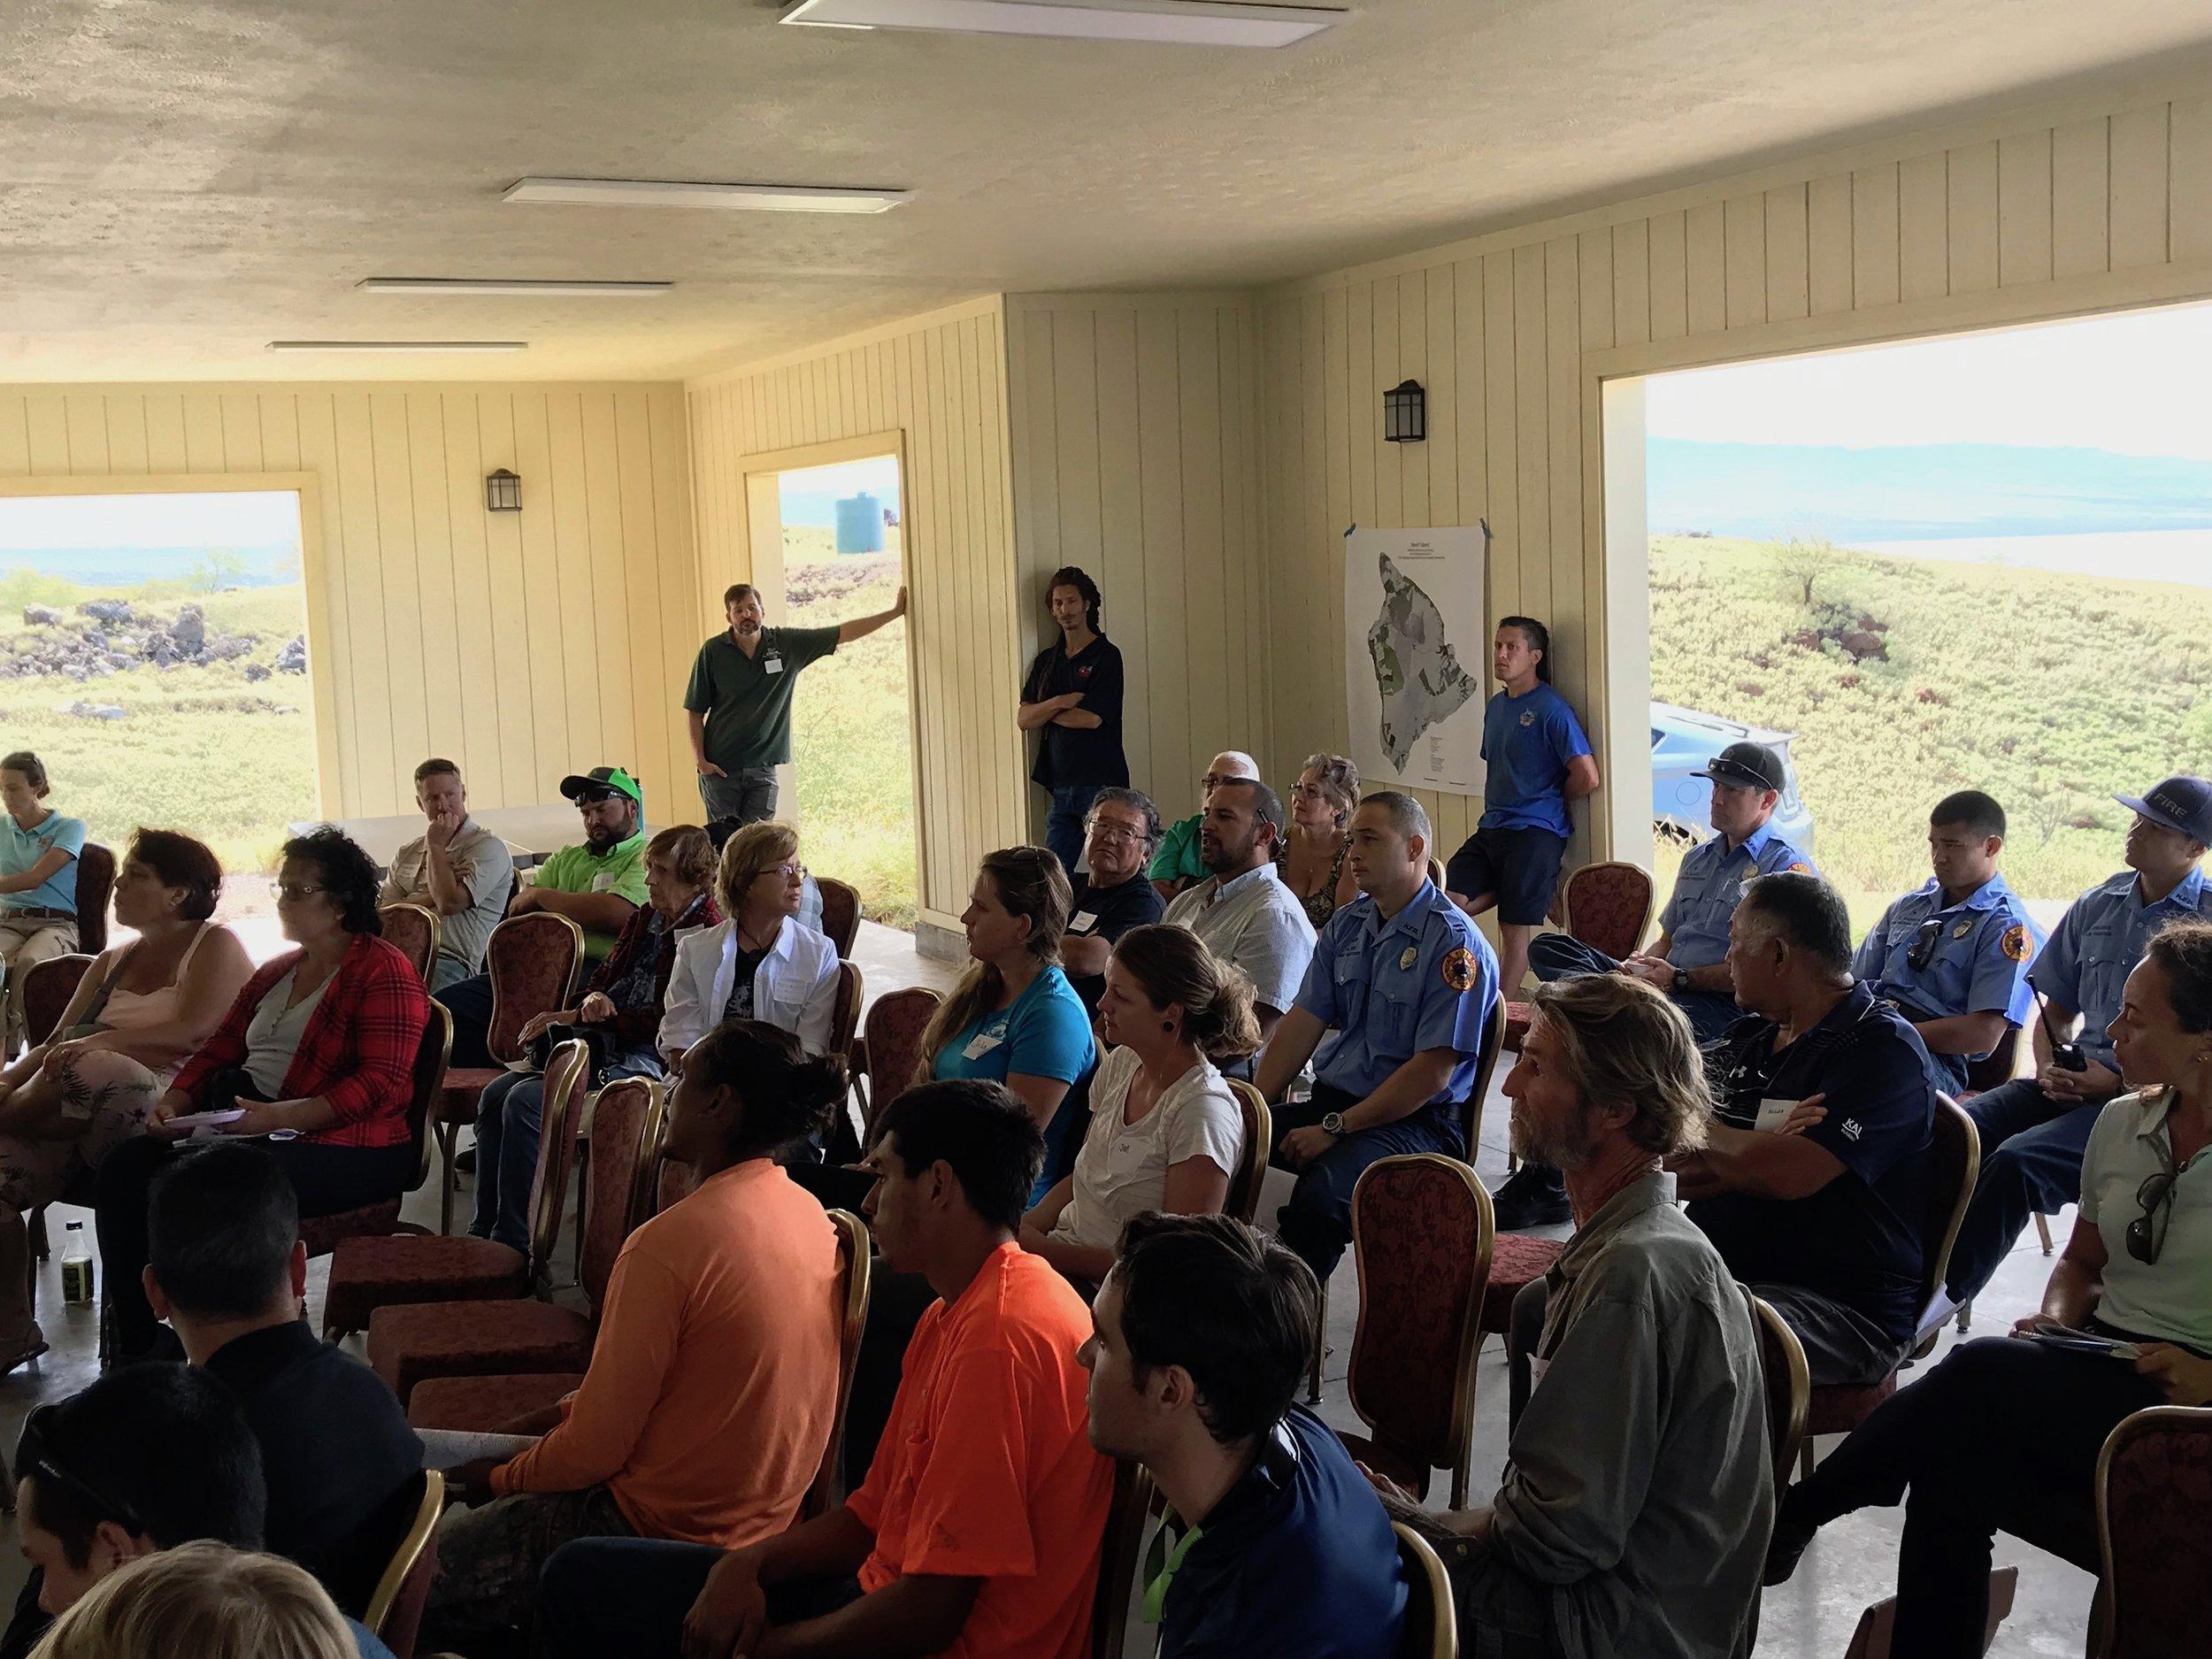 Hawaii Island Kailapa Vegetative Fuels Management Collaborative Action Planning Workshop_2_26_2019_58.jpg